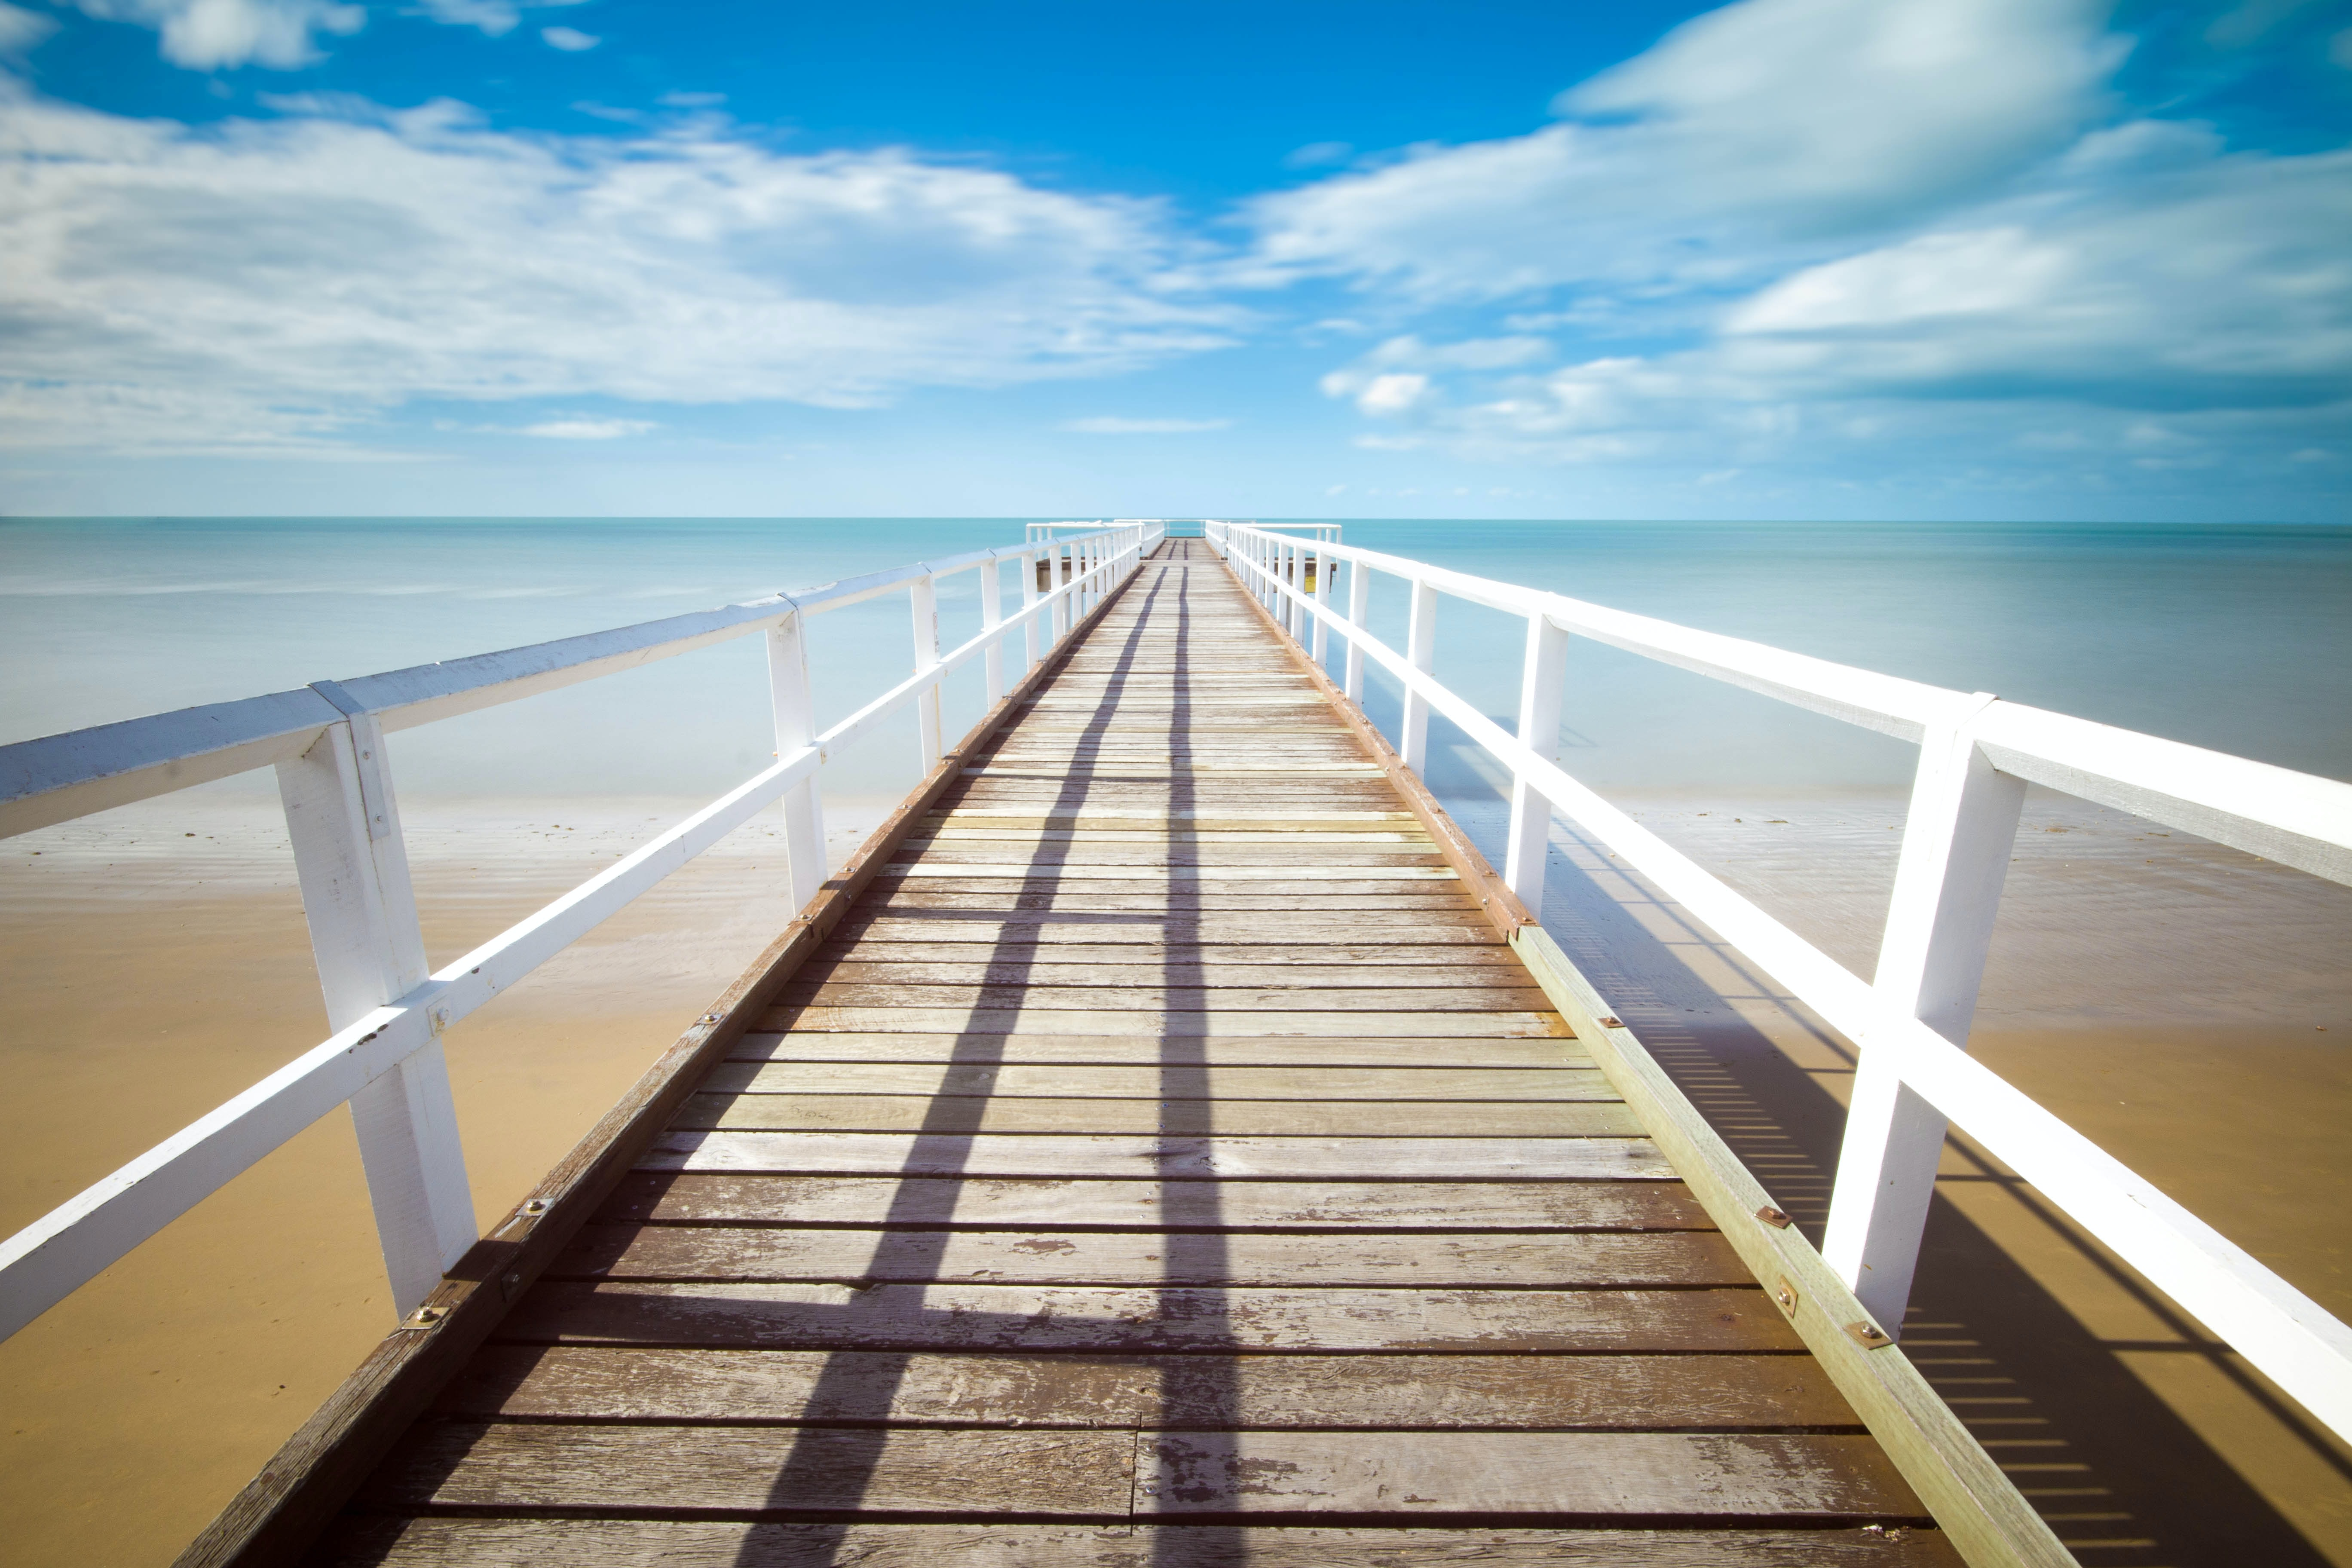 Wooden pier pathway with white wooden railing